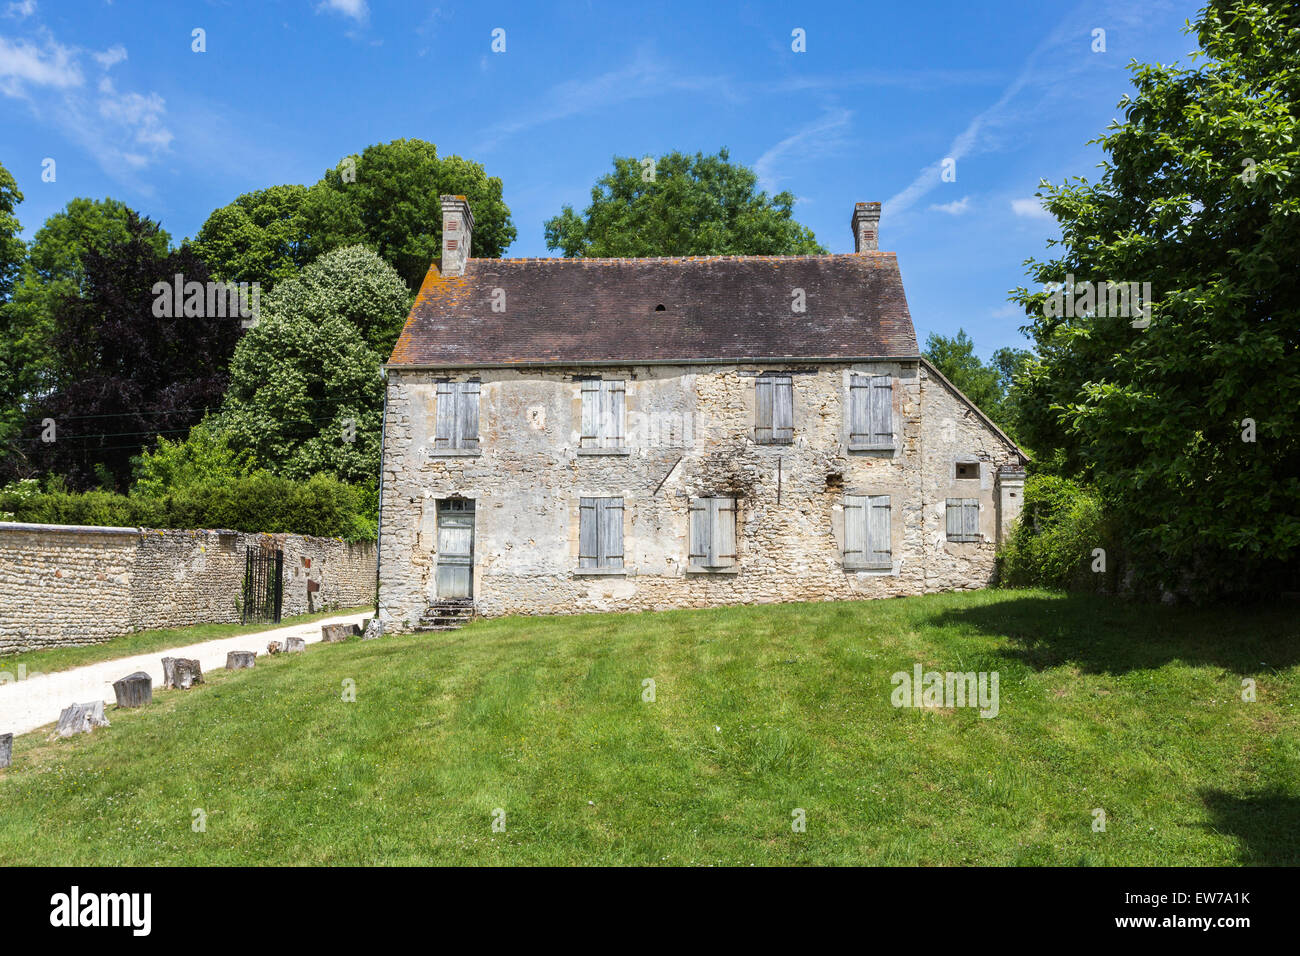 Neglected, decaying stone cottage in Domaine de Villarceaux, near Chaussy, Ile-de-France, northern France - Stock Image